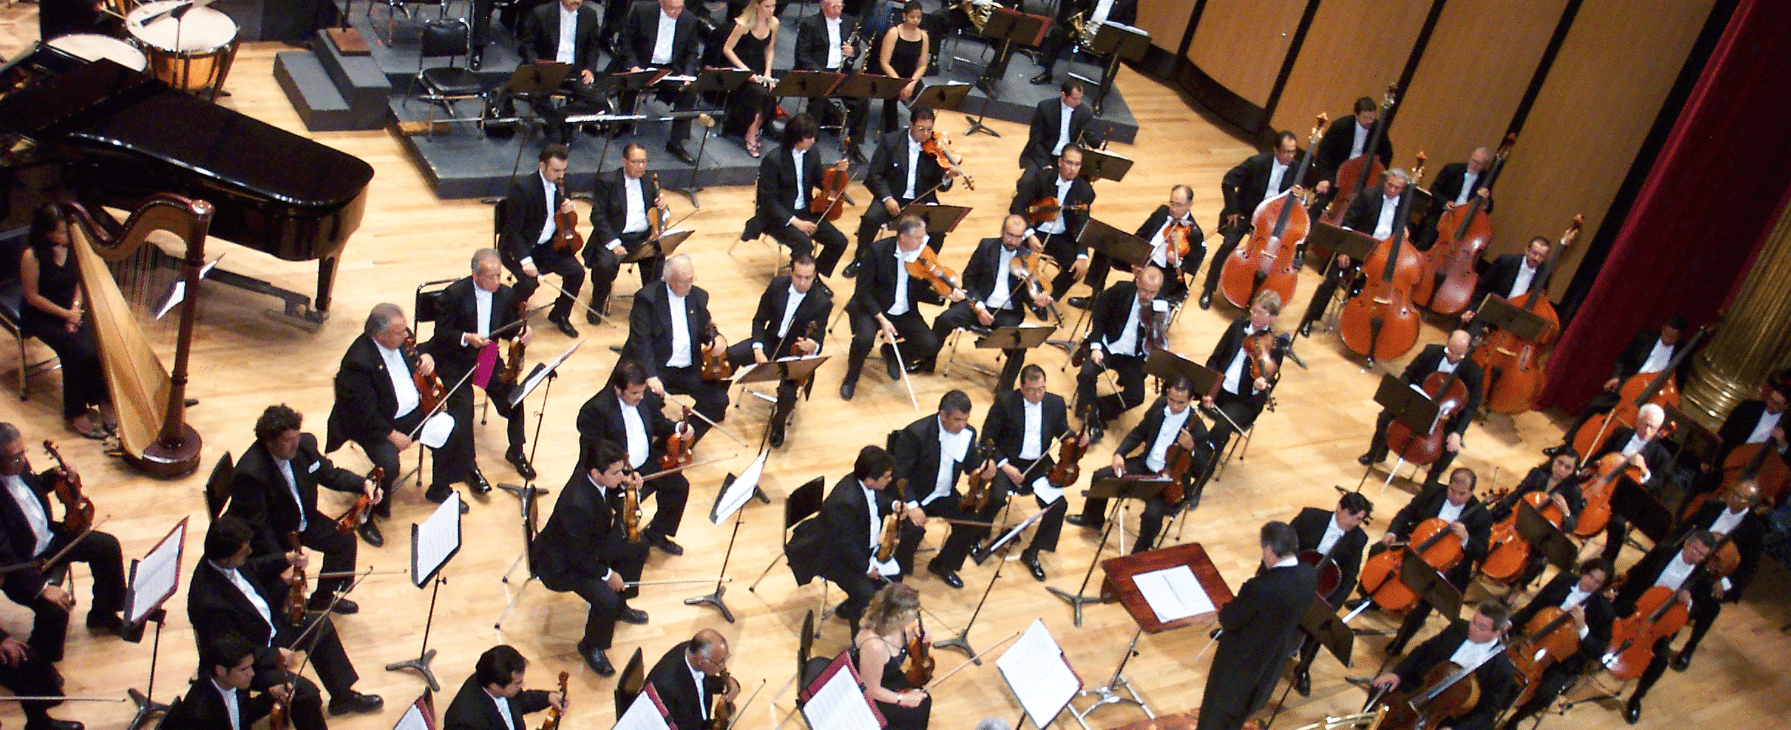 Orchestras